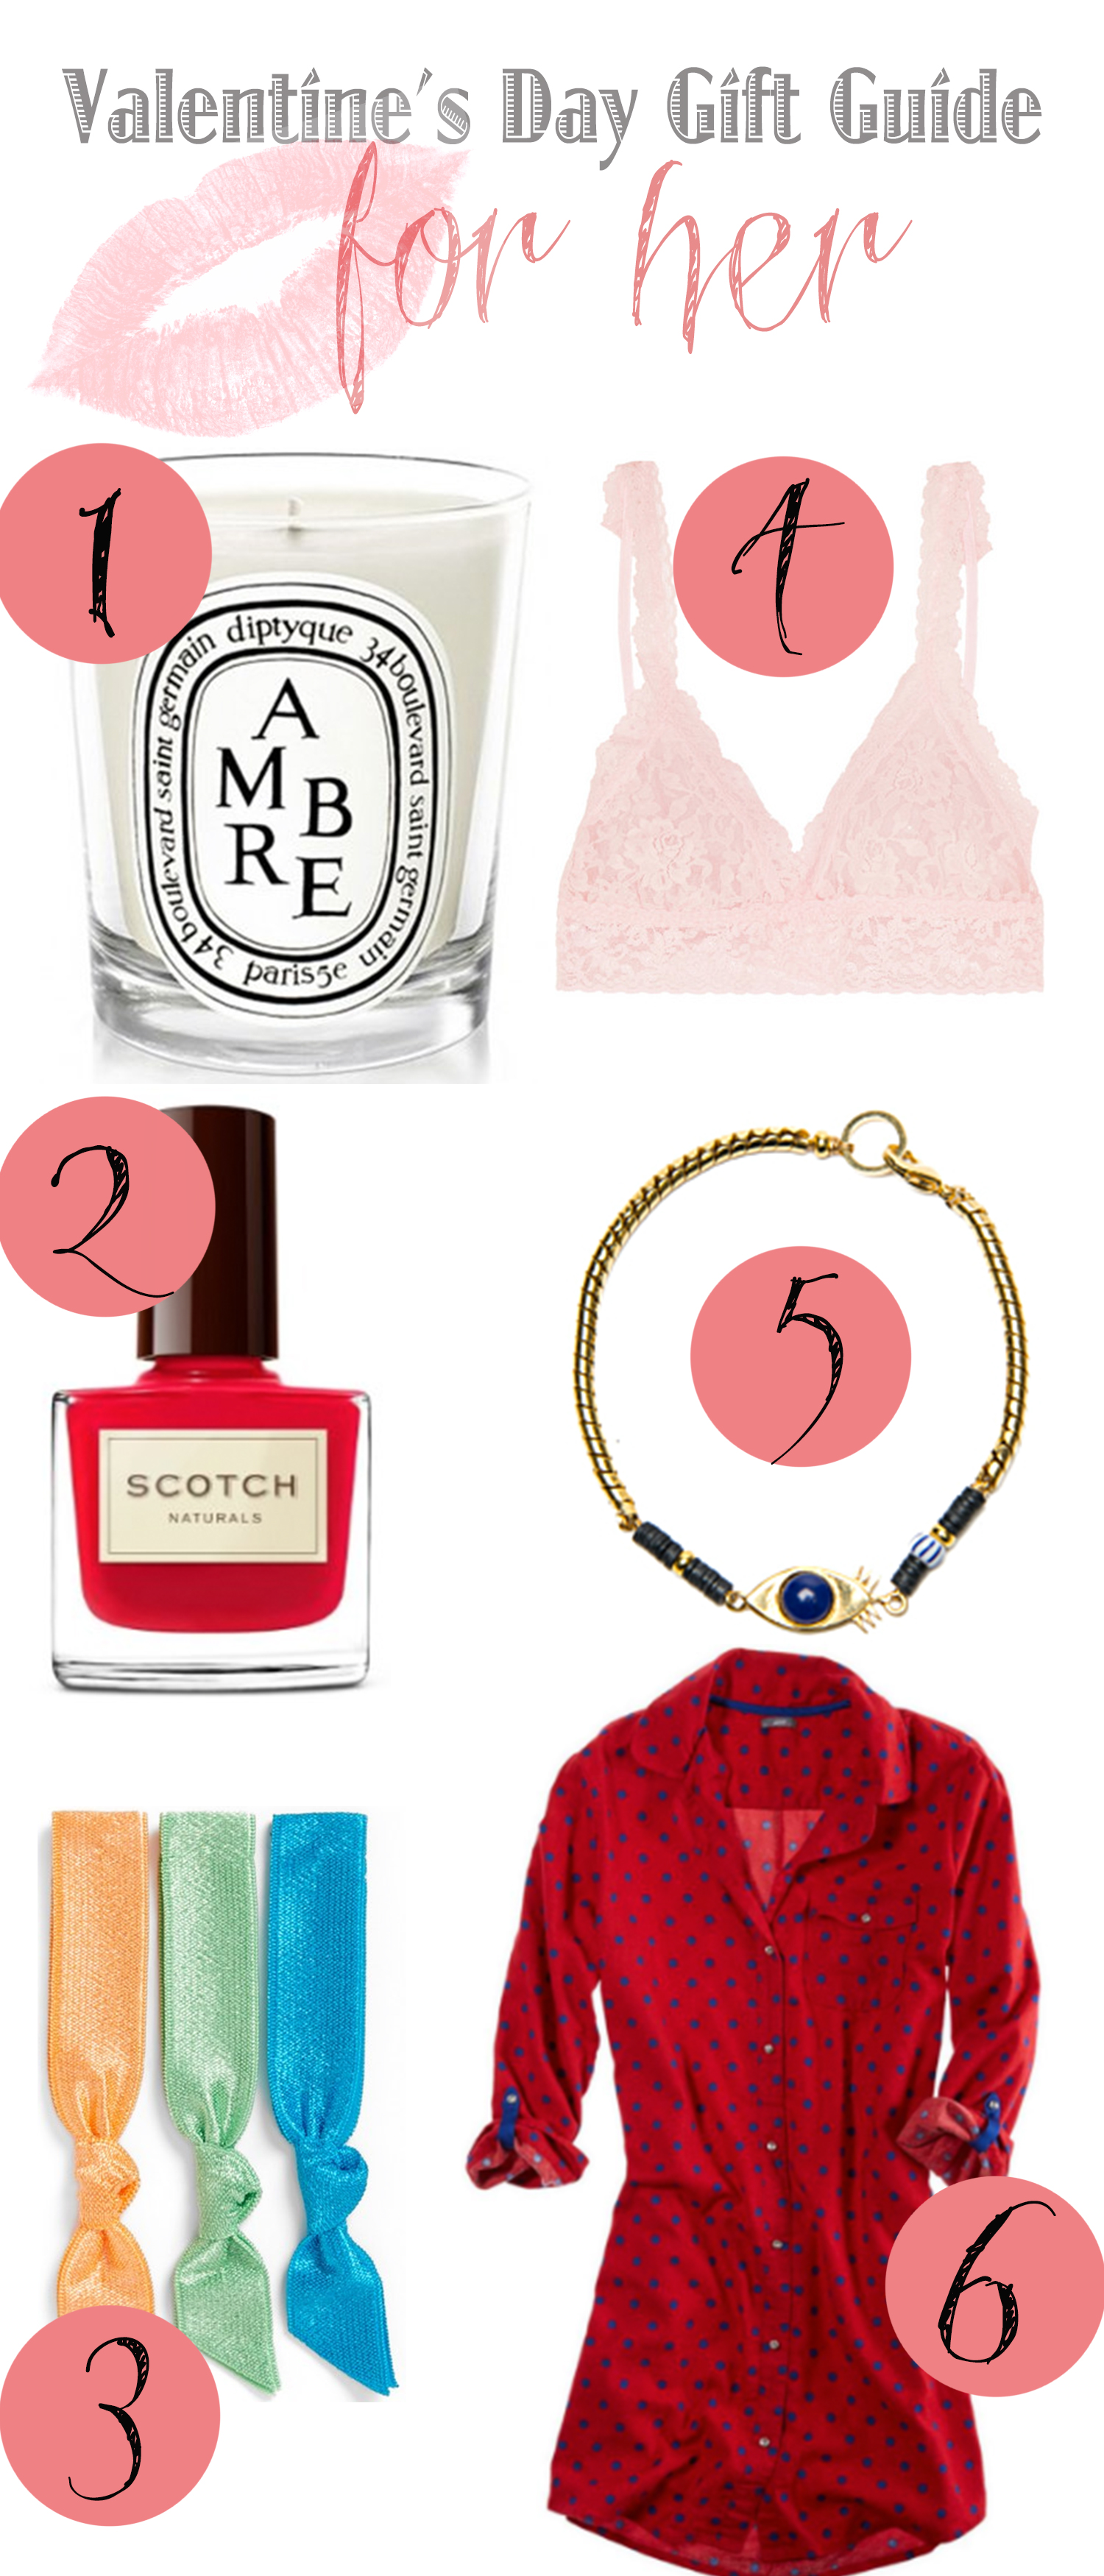 Pin it! 2014 Valentine's gift guide for her.